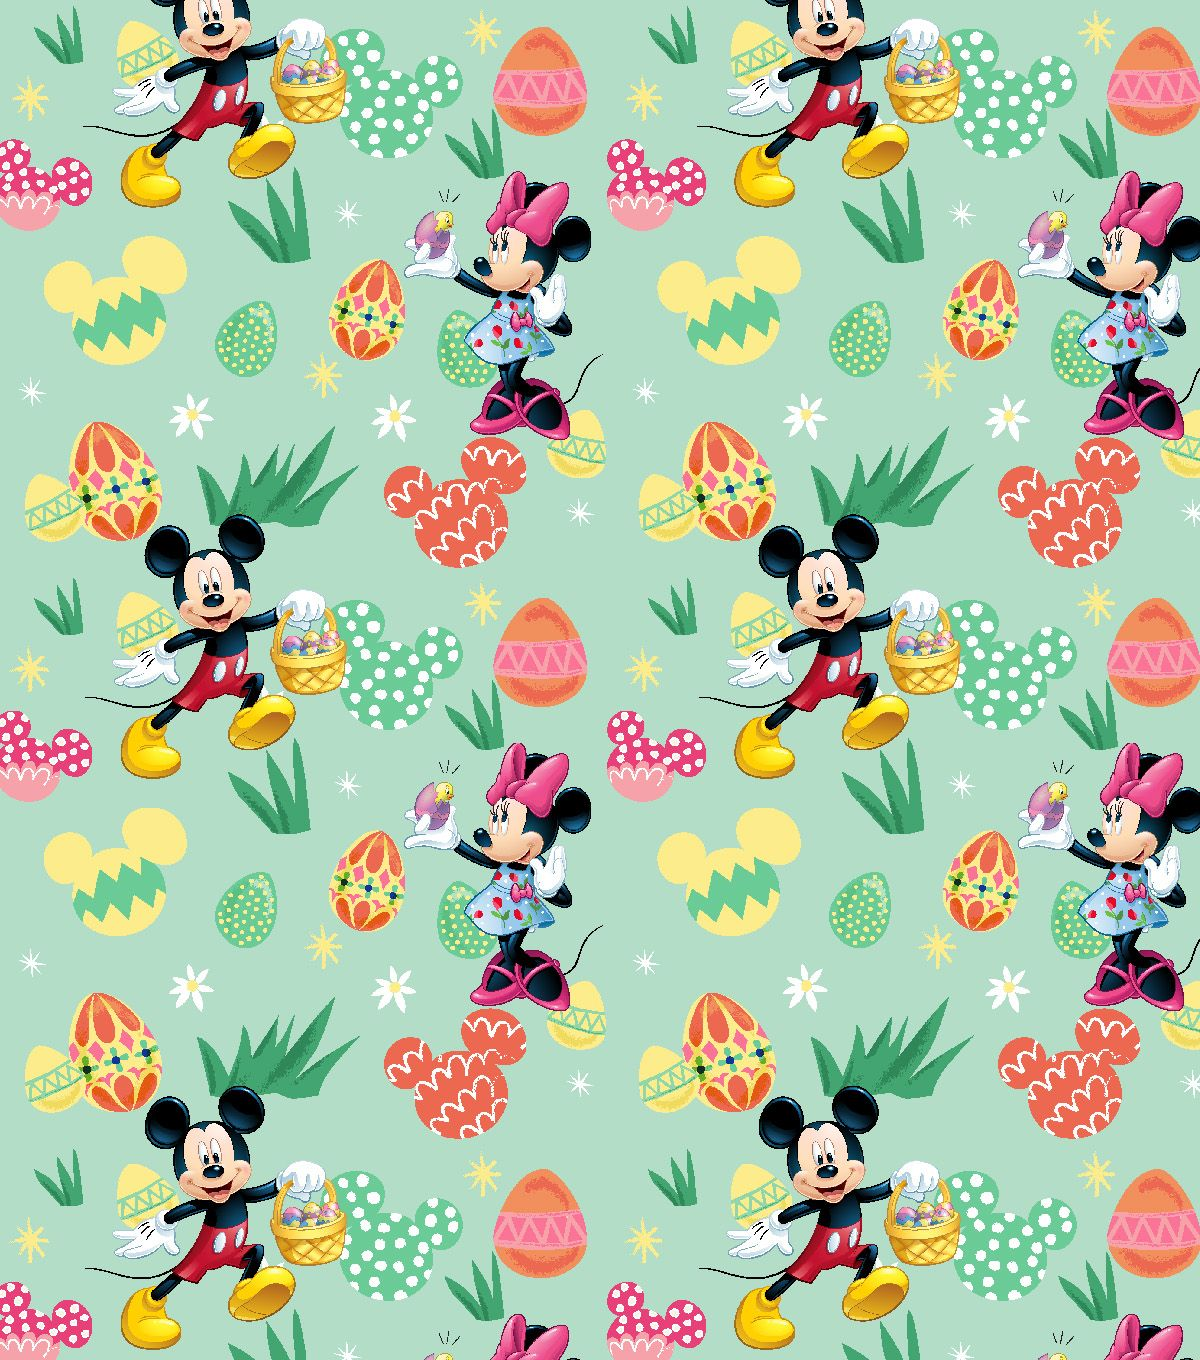 Disney Easter Mickey Minnie Cotton Fabric Eggs Hunt Disney Easter Disney Fabric Easter Wallpaper